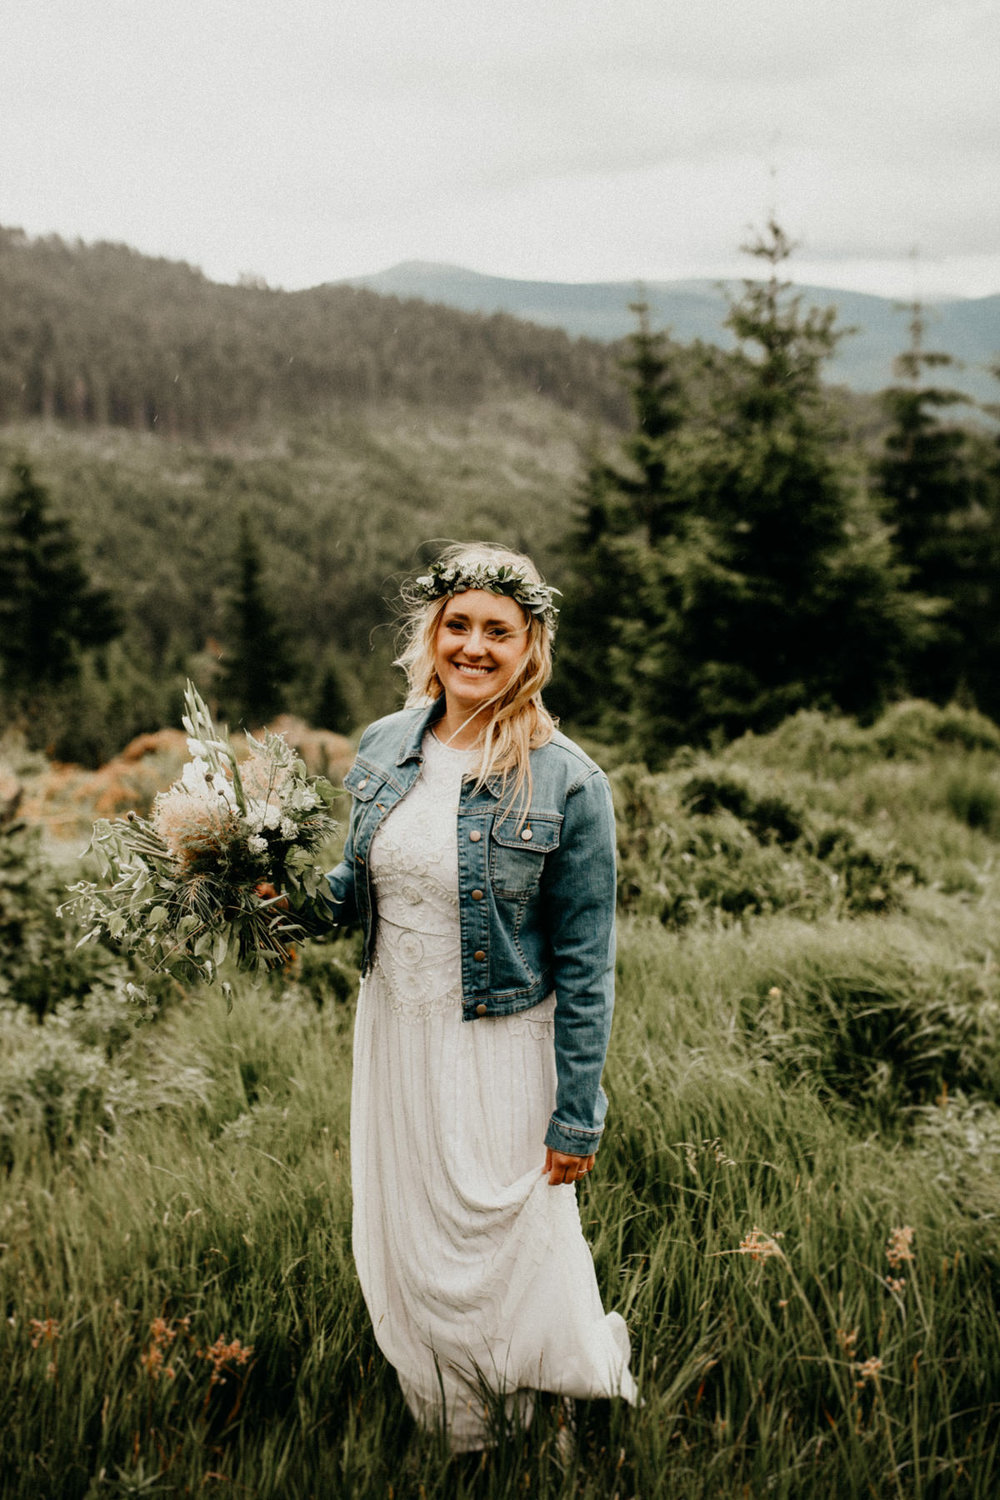 portrait of the bride with mountains in the background